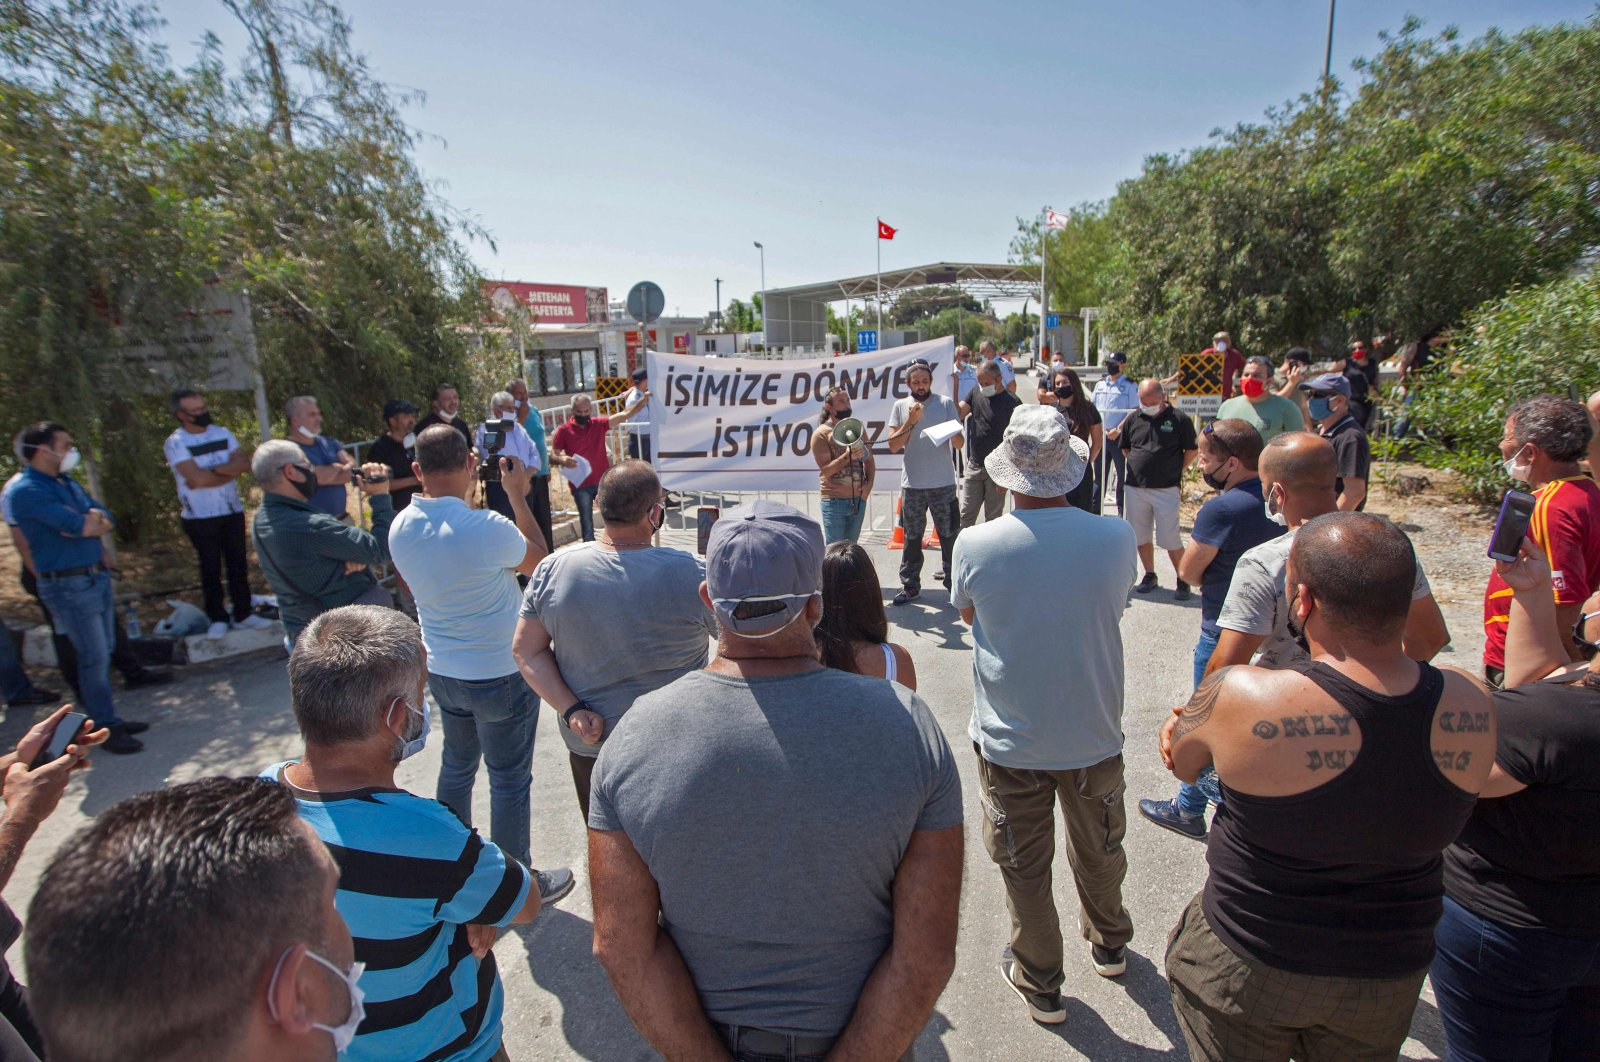 Turkish Cypriots living in the north are protesting the Greek Cypriot administration's closure of border gates as part of efforts to stop the spread of the coronavirus at the Ayios Dhometios crossing, May 15, 2020  (AFP Photo)